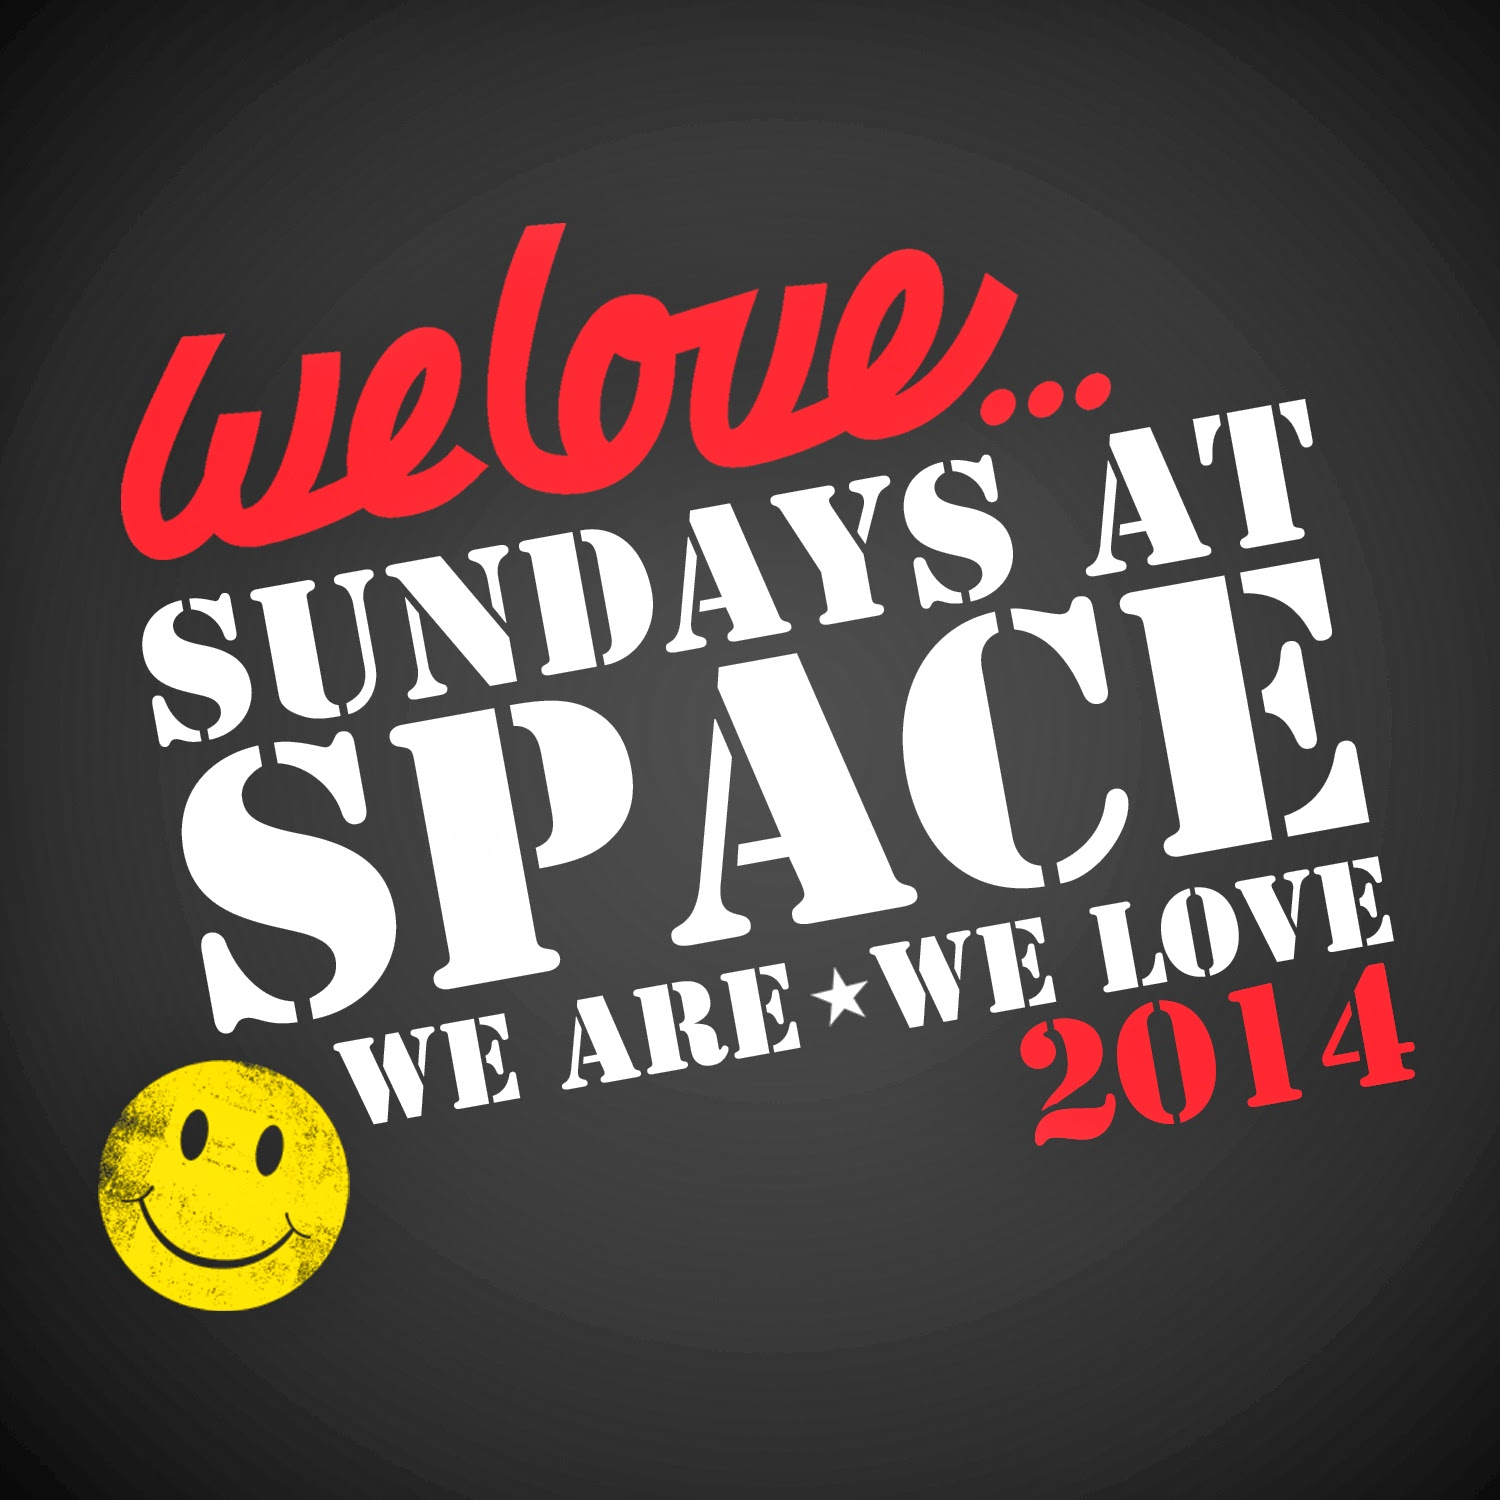 A We Love Sundays at Space Loco Dice